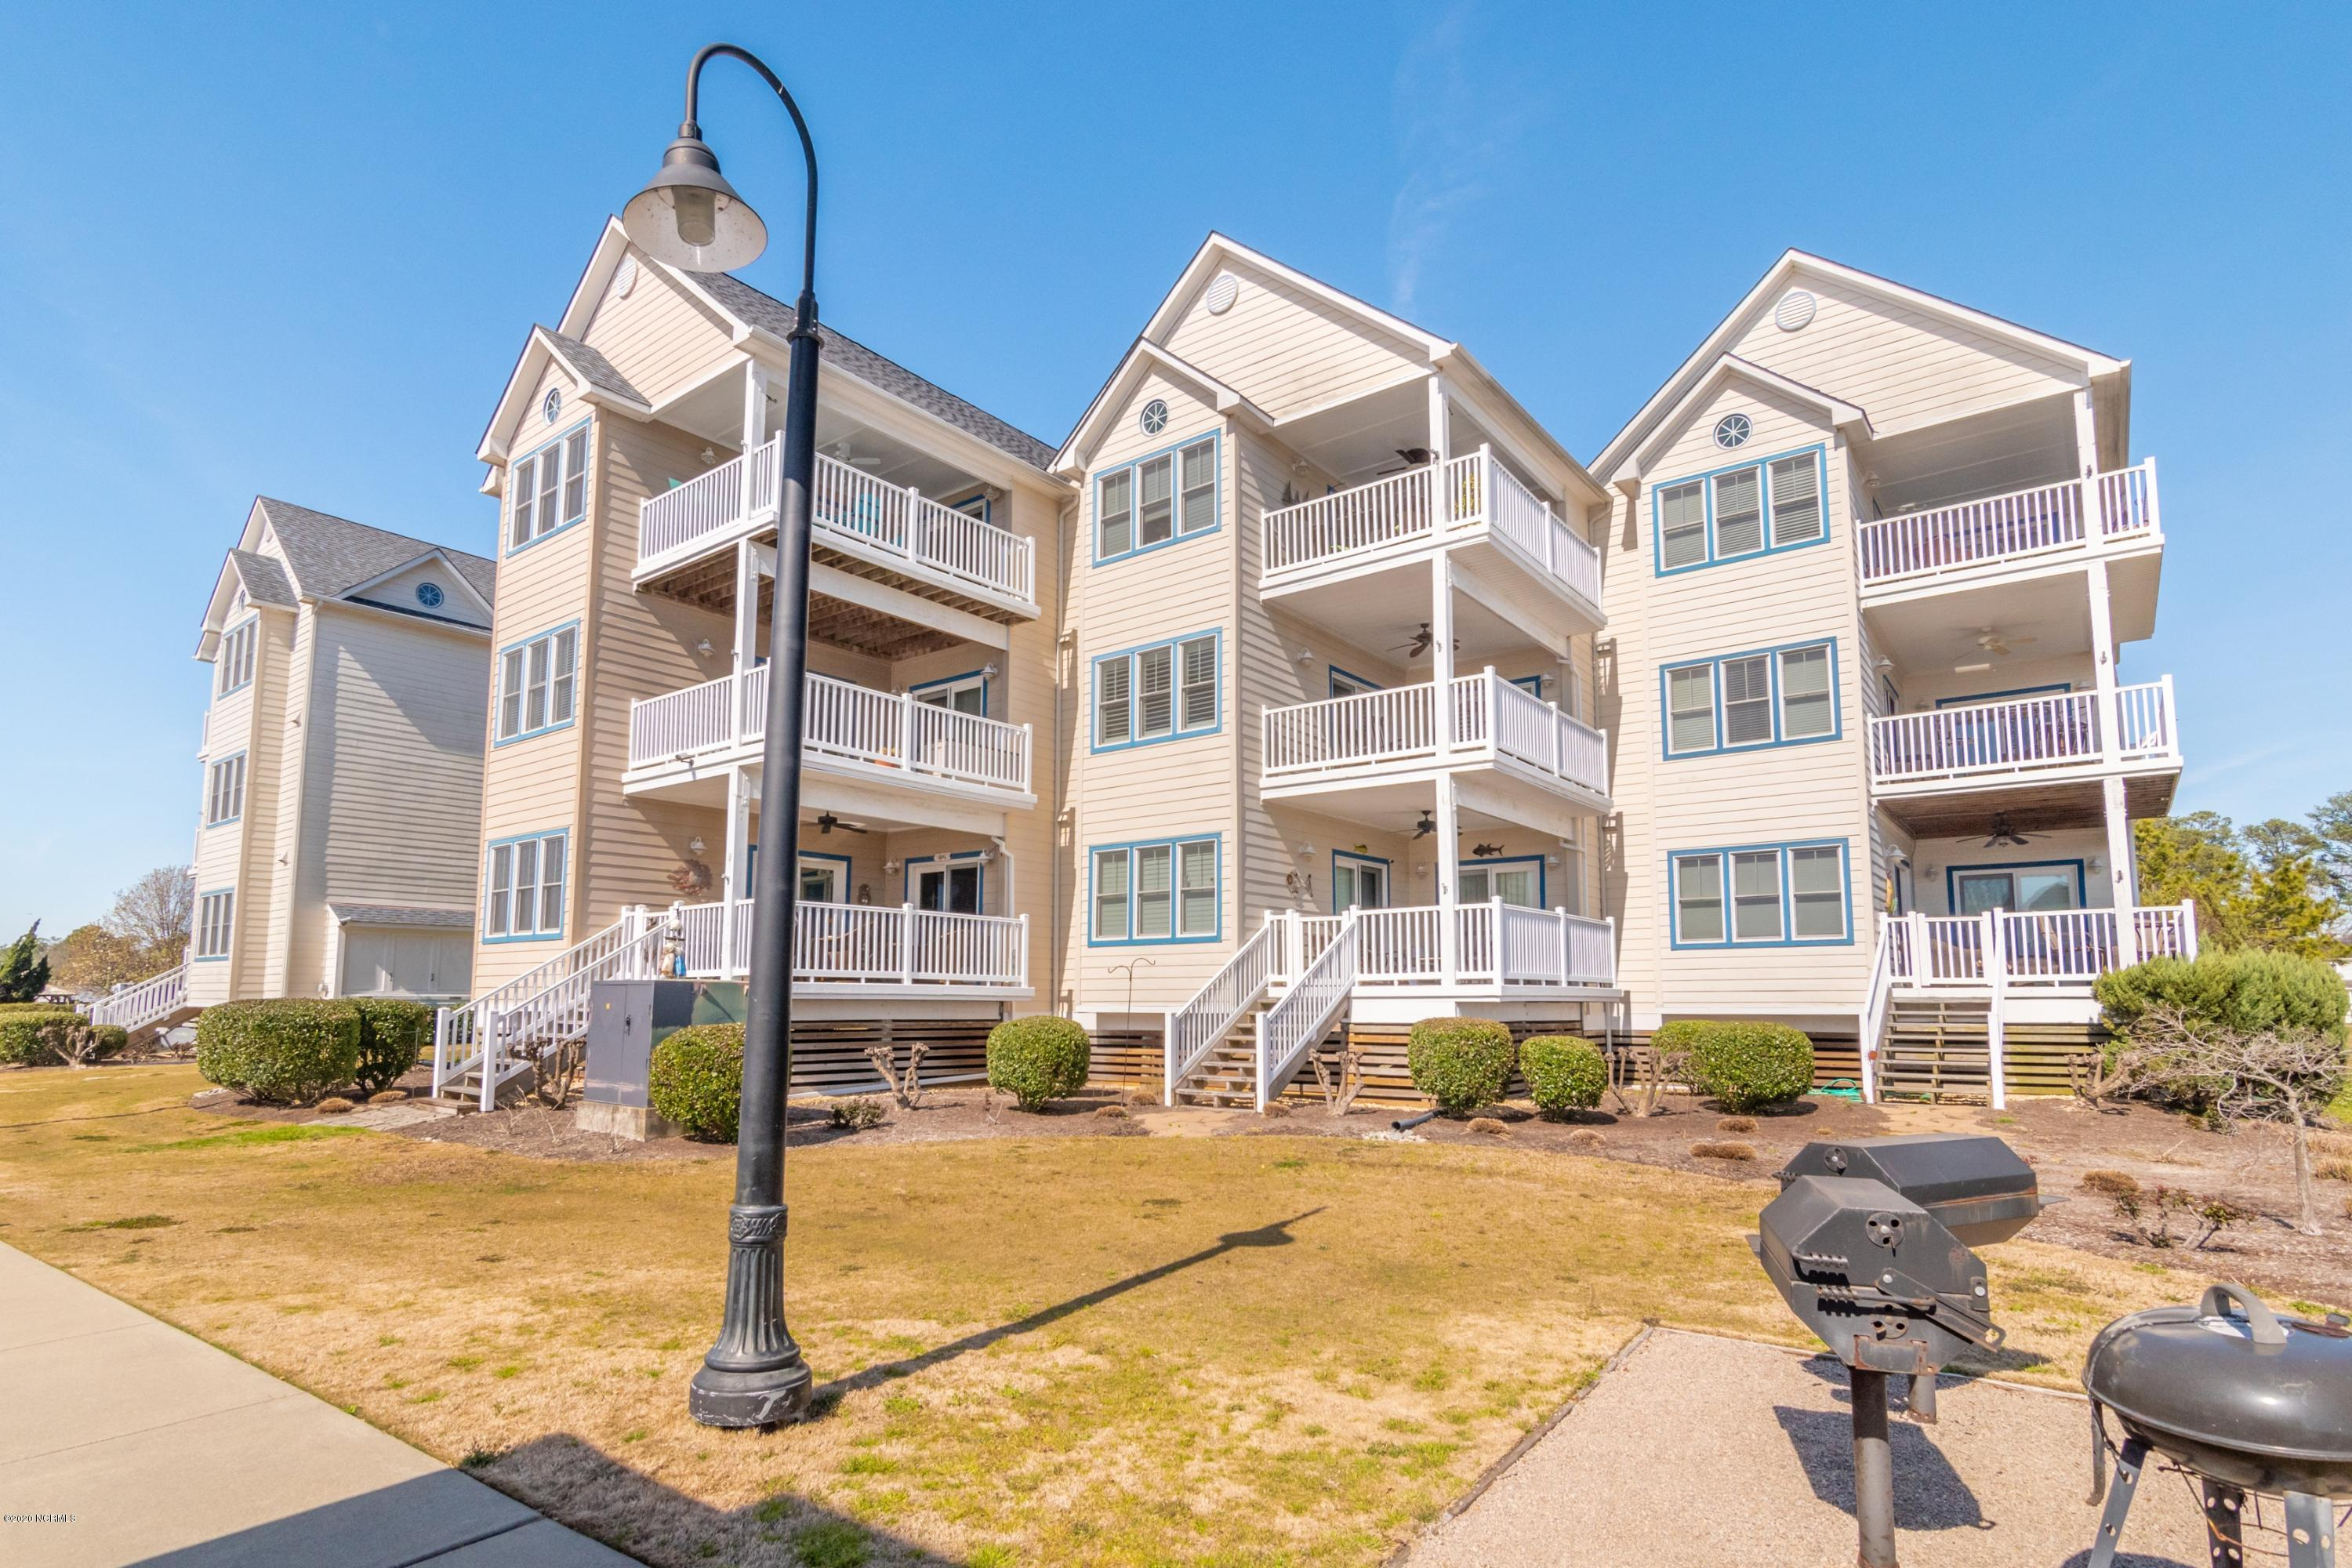 4206 Day Beacon Drive, Belhaven, North Carolina 27810, 2 Bedrooms Bedrooms, 6 Rooms Rooms,2 BathroomsBathrooms,Condominium,For sale,Day Beacon,100204126